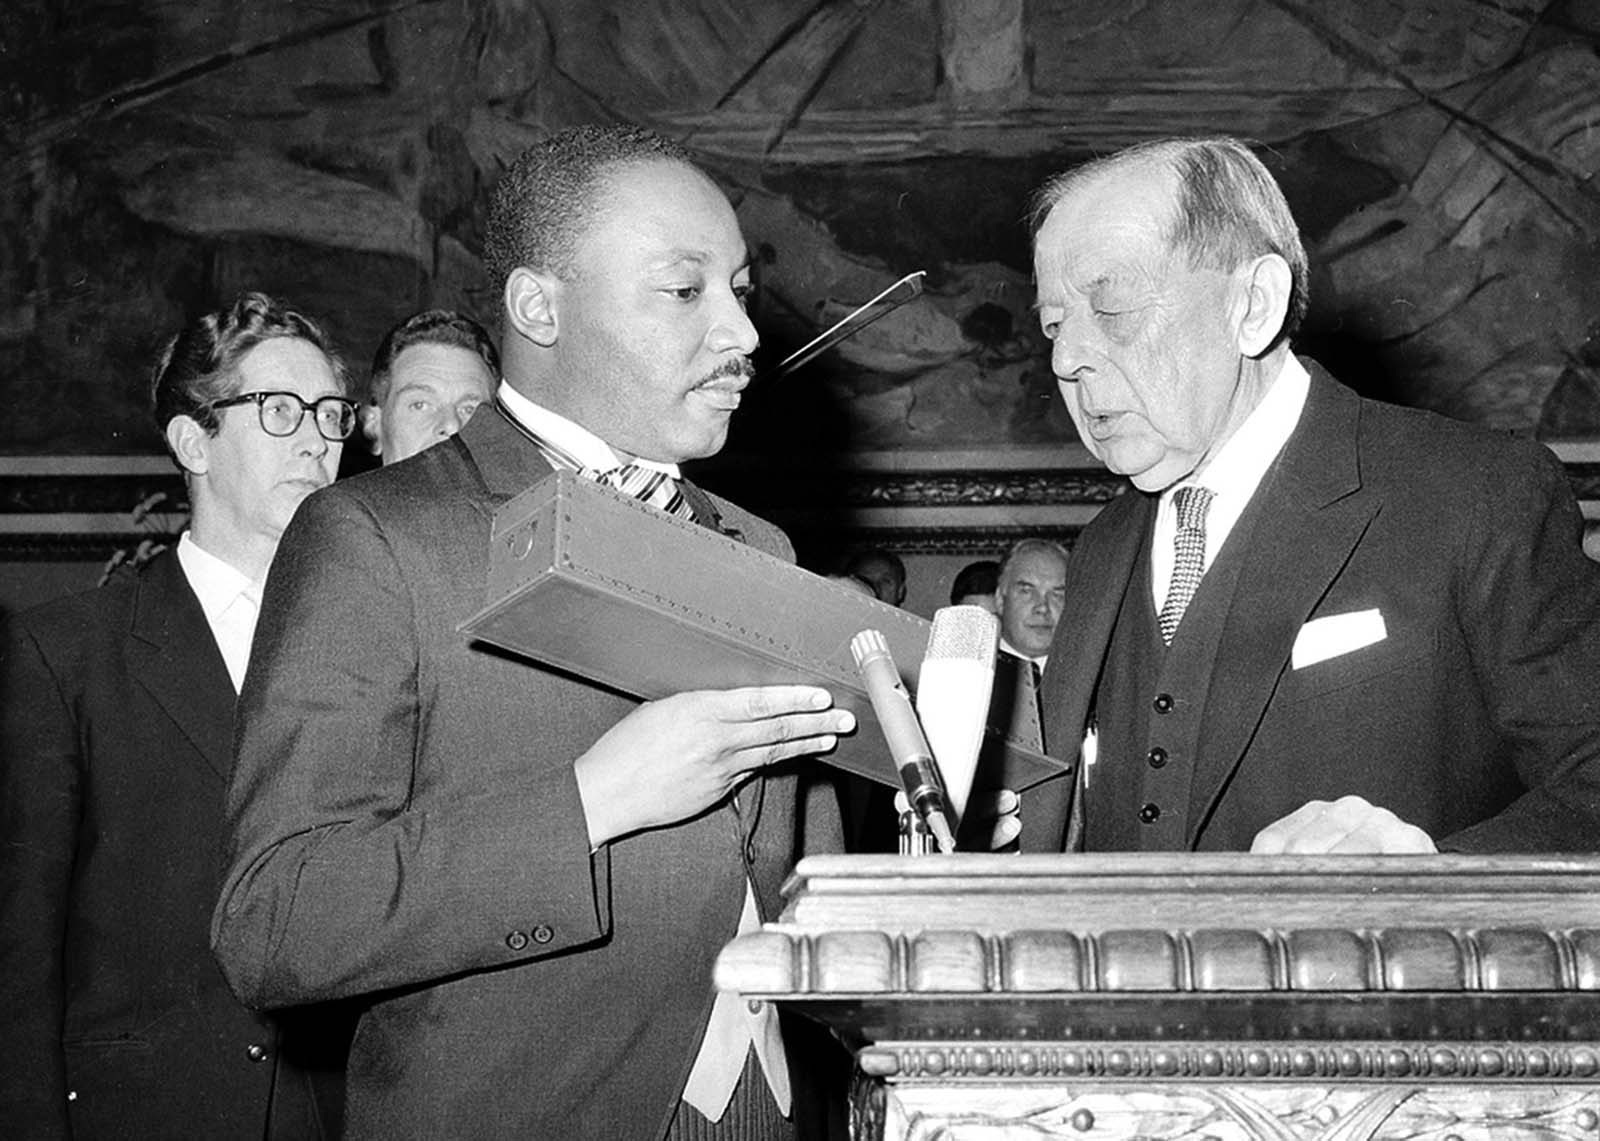 Dr. Martin Luther King Jr. receives the Nobel Peace Prize from the hands of Gunnar Jahn, Chairman of the Nobel Committee, in Oslo, Norway, on December 10, 1964. The 35-year-old Reverend King was the youngest man ever to receive the prize. In the presentation speech, King was praised as a